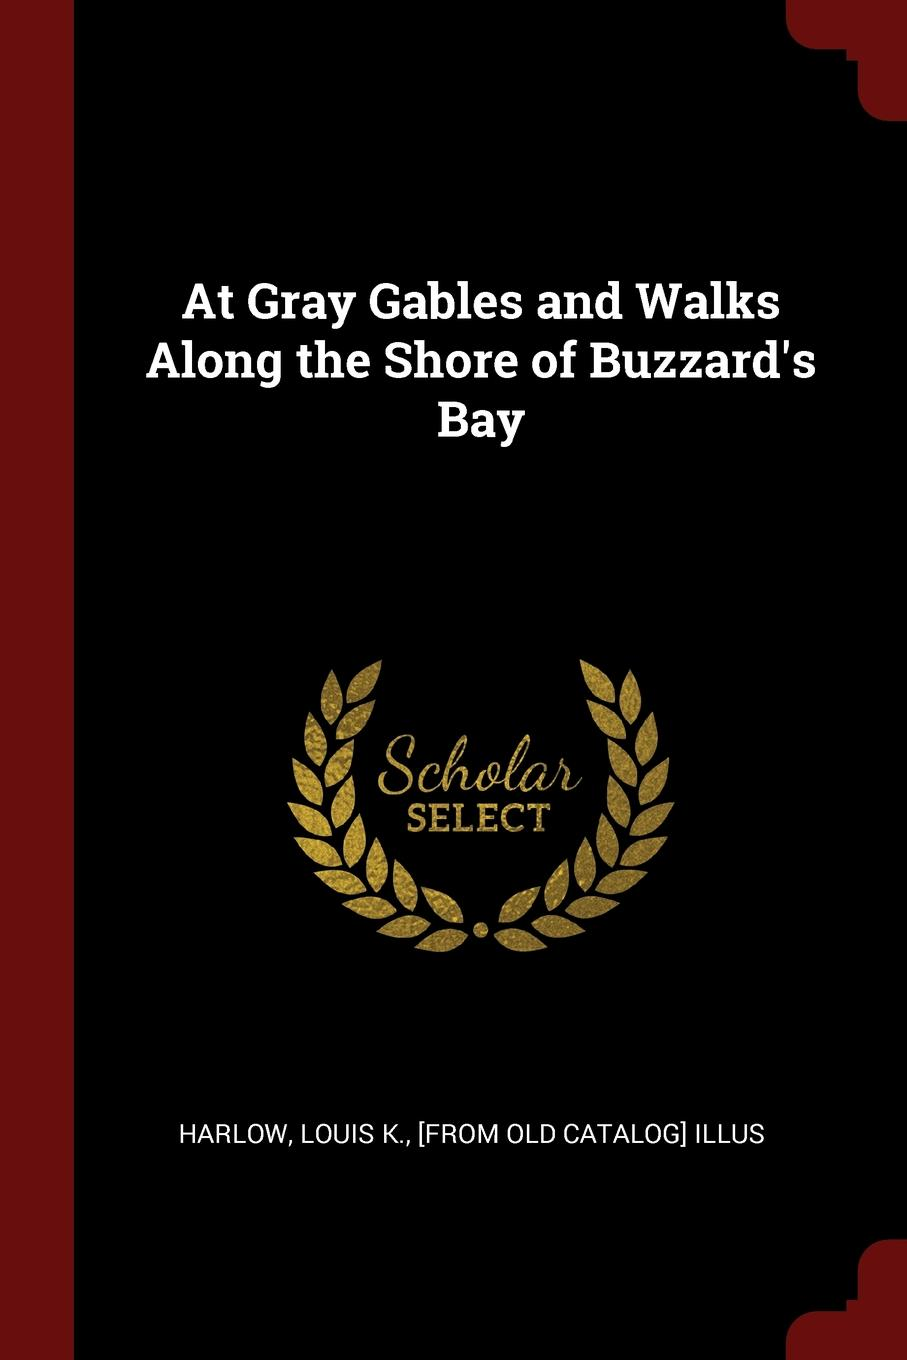 At Gray Gables and Walks Along the Shore of Buzzard.s Bay